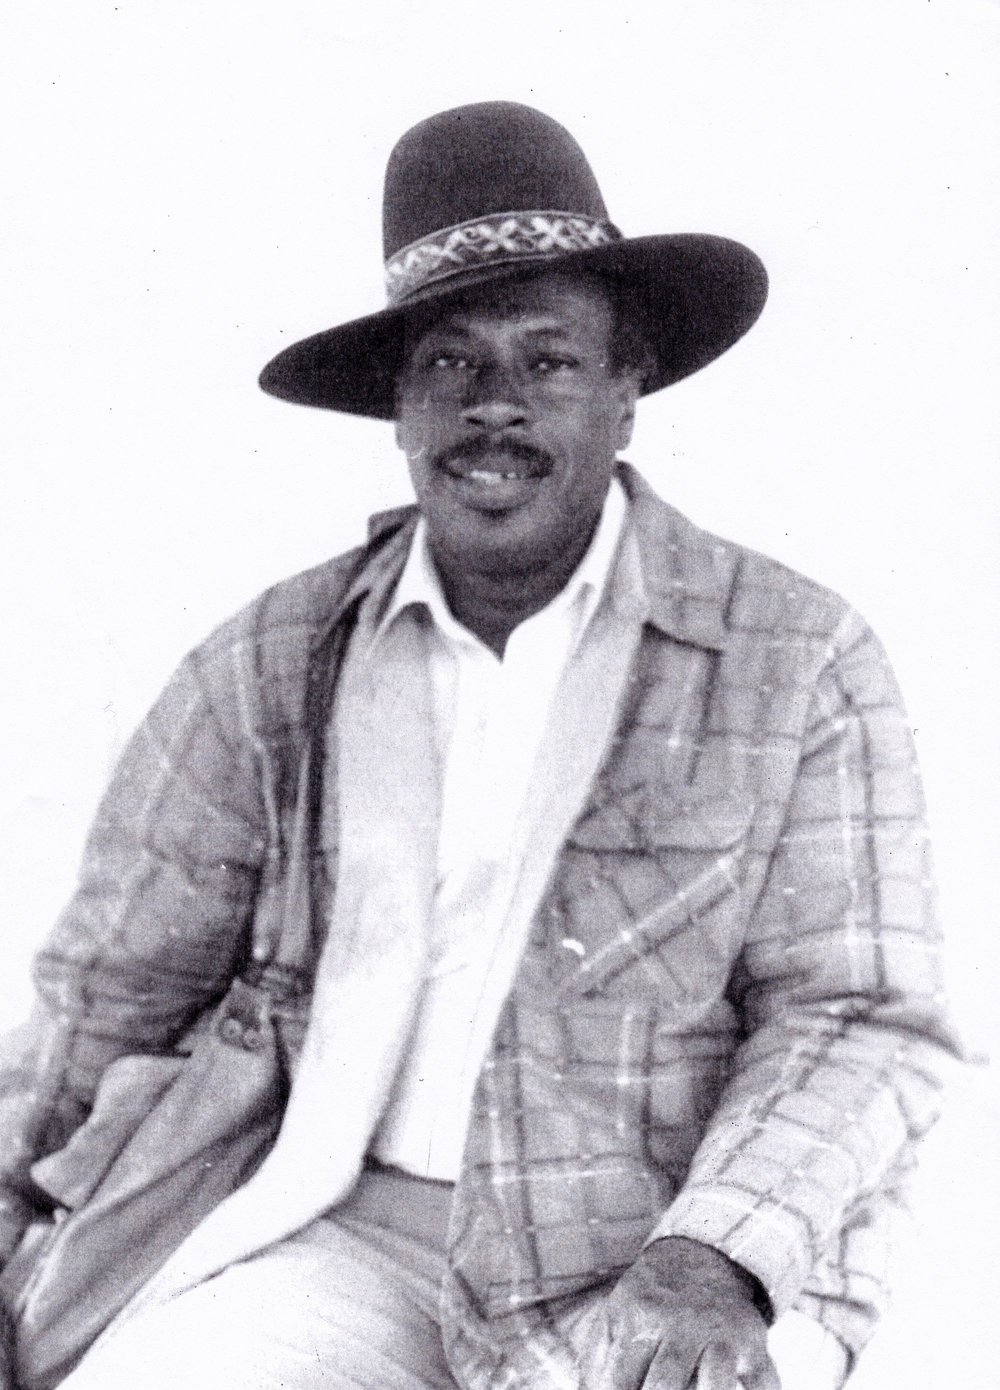 Photograph of artist Earl Cooke